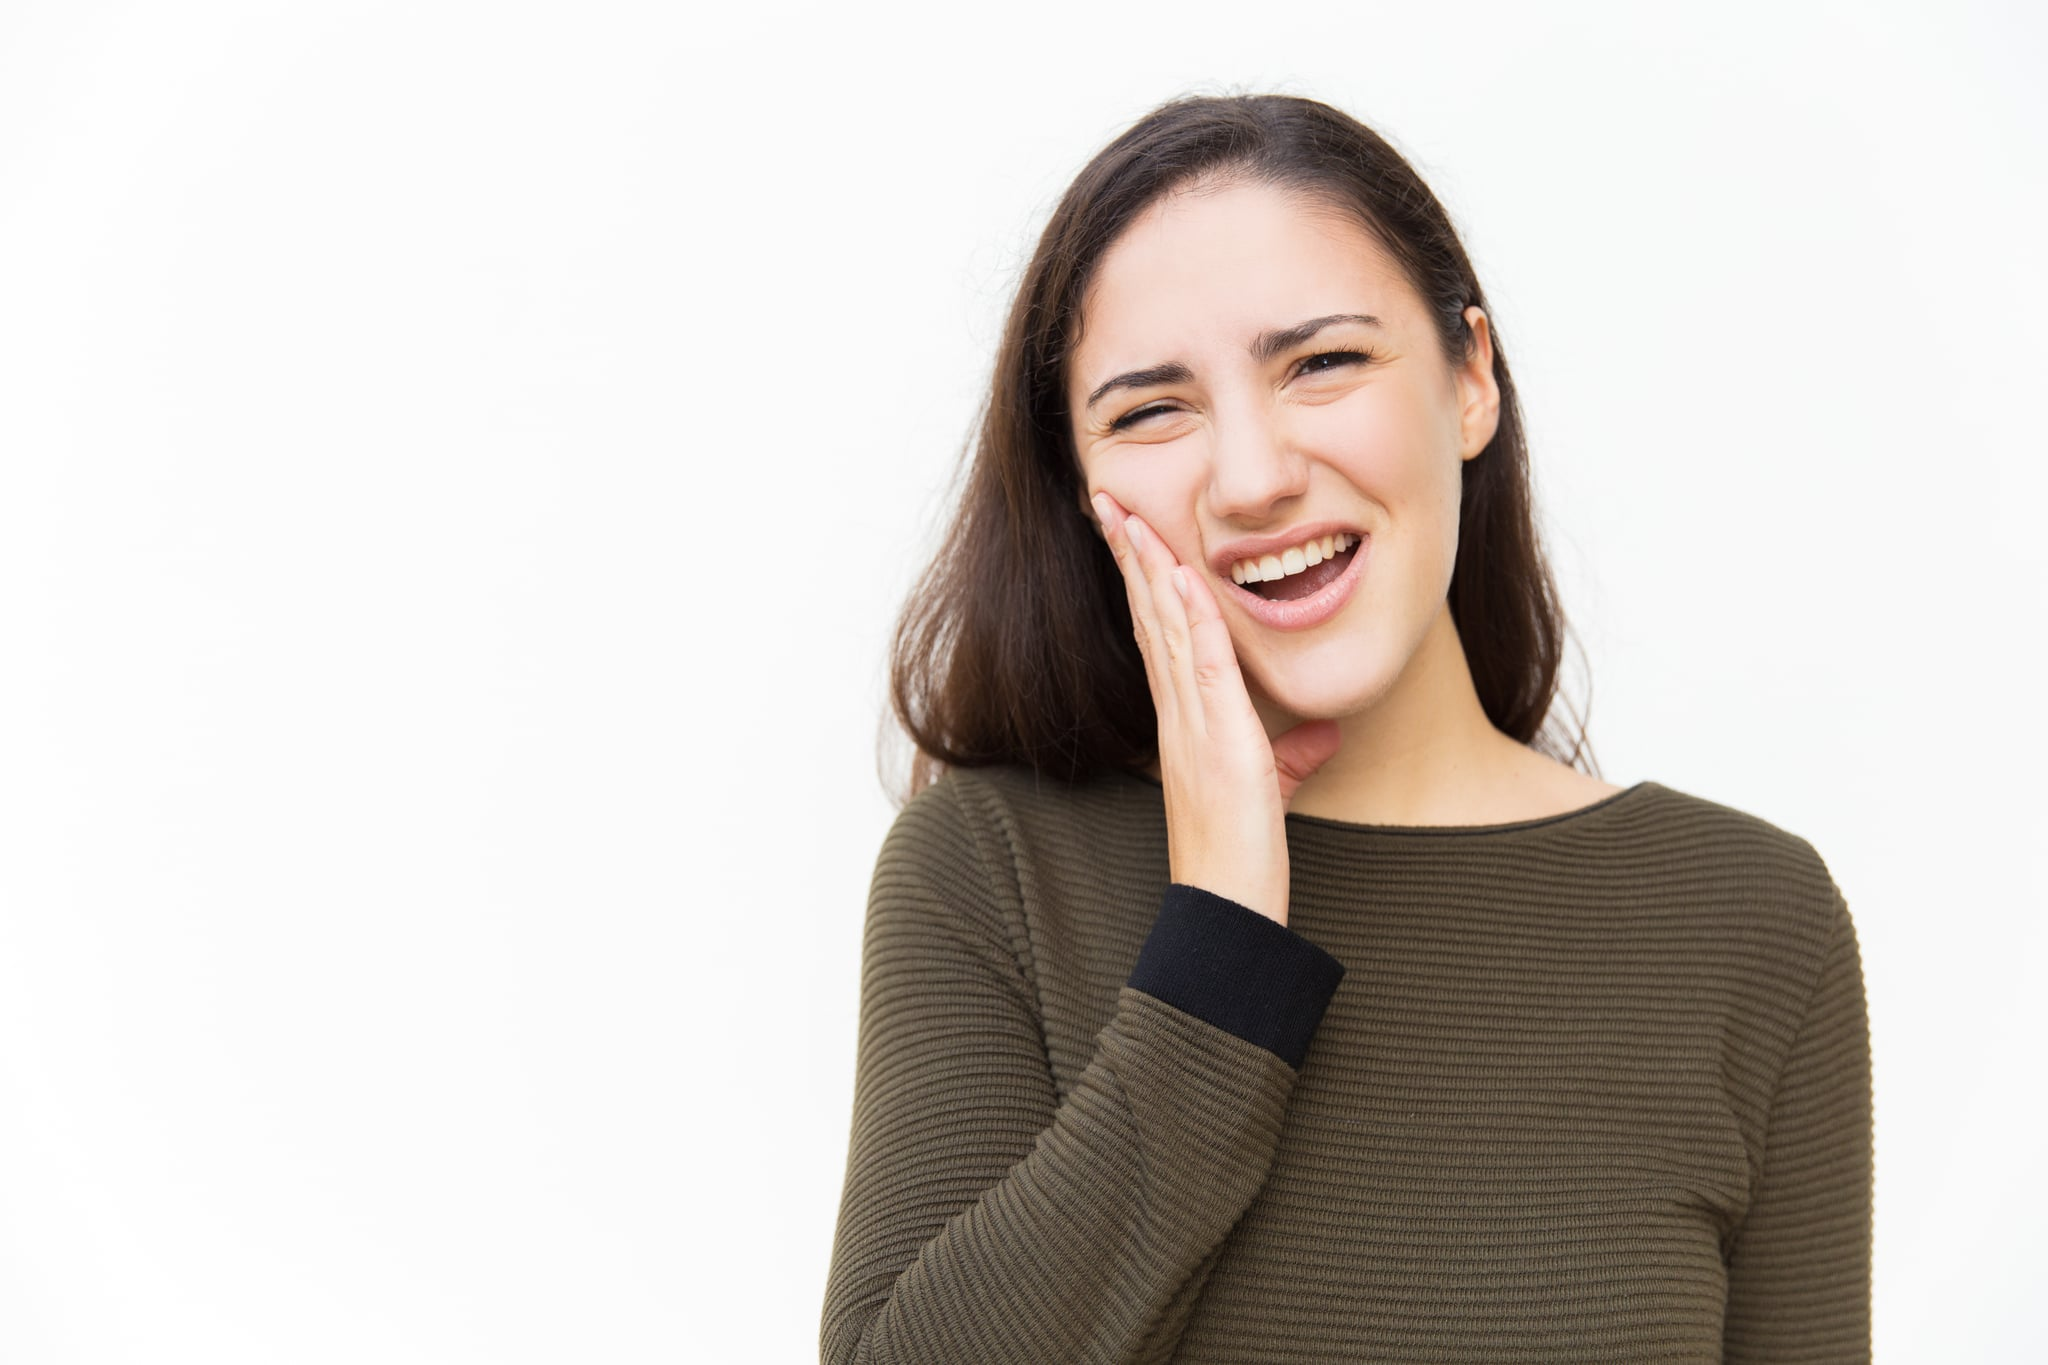 Upset woman with pain grimace suffering from toothache. Young woman in casual standing isolated over white background. Dental problem concept